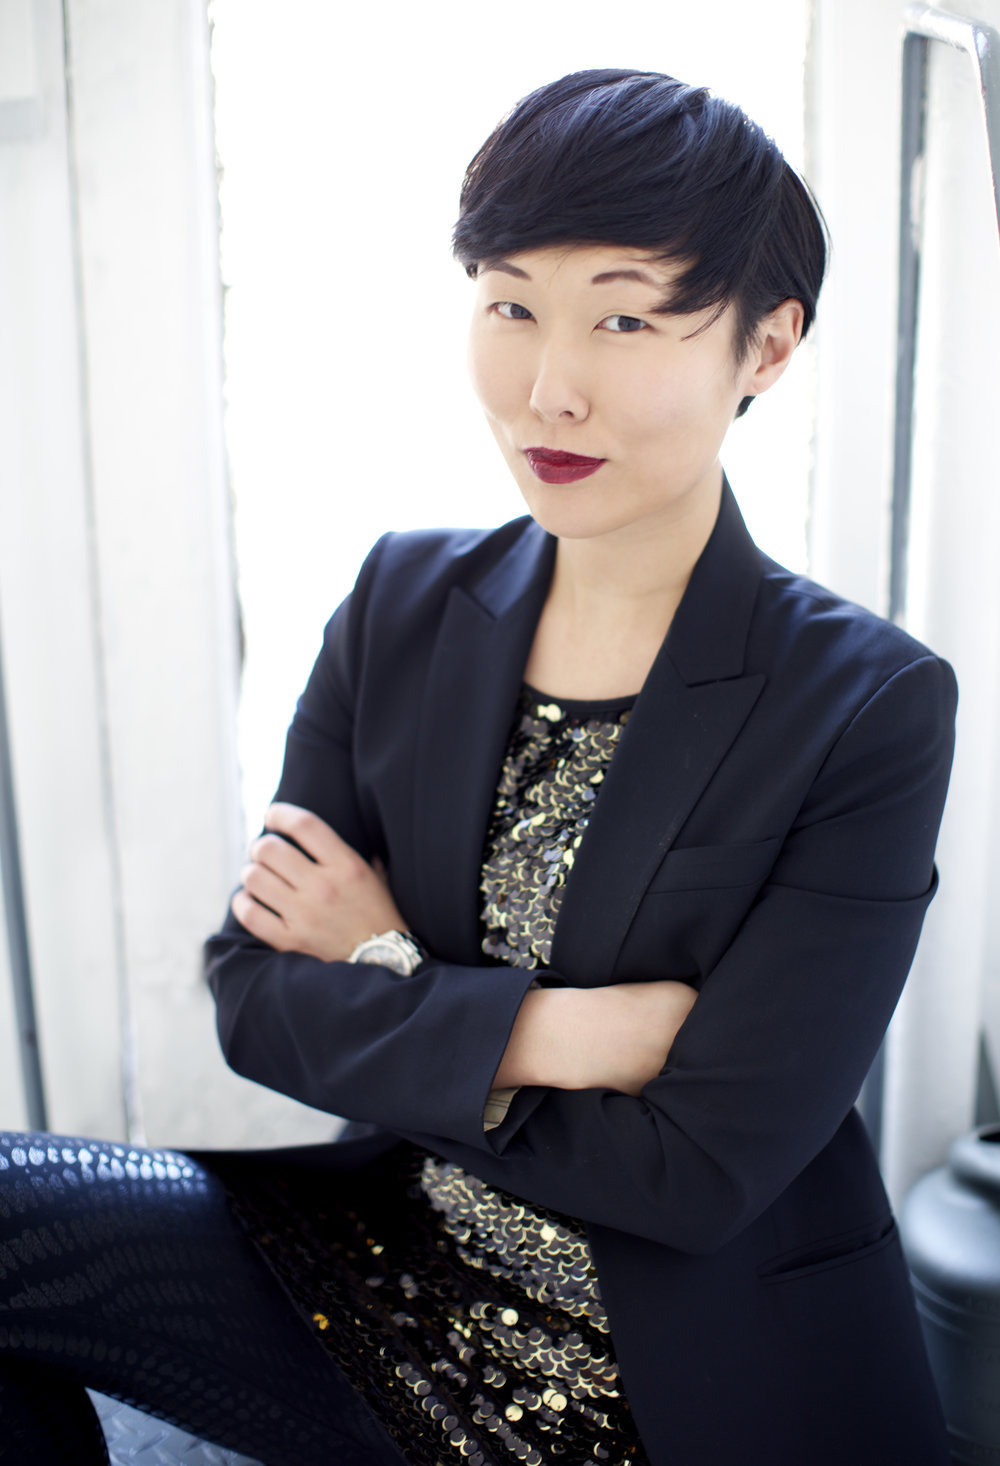 cleo gray - is an actor, producer, and activist born in South Korea and raised in New Jersey. She was a member of The Flea Theater's resident acting company (2011-2016), The Bats, and was a co-producer of the hit late night series #serials@theflea (2014-16) alongside Crystal Arnette.  Cleo's credits at The Flea include the World premieres of a The Place We Built by Sarah Gancher directed by Danya Taymor; a cautionary tail by christopher oscar peña; Thomas Bradshaw's JOB (both directed by Benjamin Kamine), and Qui Nguyen's She Kills Monsters (directed by Robert Ross Parker), as well as the NYC premieres of the critically acclaimed and Drama Desk nominated These Seven Sicknesses by Sean Graney and Amy Freed's Restoration Comedy (both Drama Desk nominations for dir. Ed Sylvanus Iskandar). She has also appeared at the Flea in workshops and readings for Robert Askins, A. Rey Pamatmat, Krista Knight/Barry Brinegar,  Tommy Smith, Anson Mount and Lauren Yee as well as 50+ short plays for #serials. Other New York credits include the World Premiere of Ma-Yi Theatre Co's Soldier X by Rehana Lew Mirza, directed by Lucie Tiberghien; Ivy Theatre Co.'s DONKEY PUNCH by Micheline Auger (Soho Playhouse), Empire Travel Agency (Woodshed Collective), Youngblood's Asking For Trouble ('12 – '16) @ The Ensemble Studio Theatre) as well as numerous workshops and readings with Ma-Yi, EST, Woodshed Collective, Studio 42, Labyrinth, Clubbed Thumb, Lark Play Development, New Georges, Ars Nova, Target Margin, New Dramatists and the Jewish Plays Project. BFA in Acting from Montclair State University.